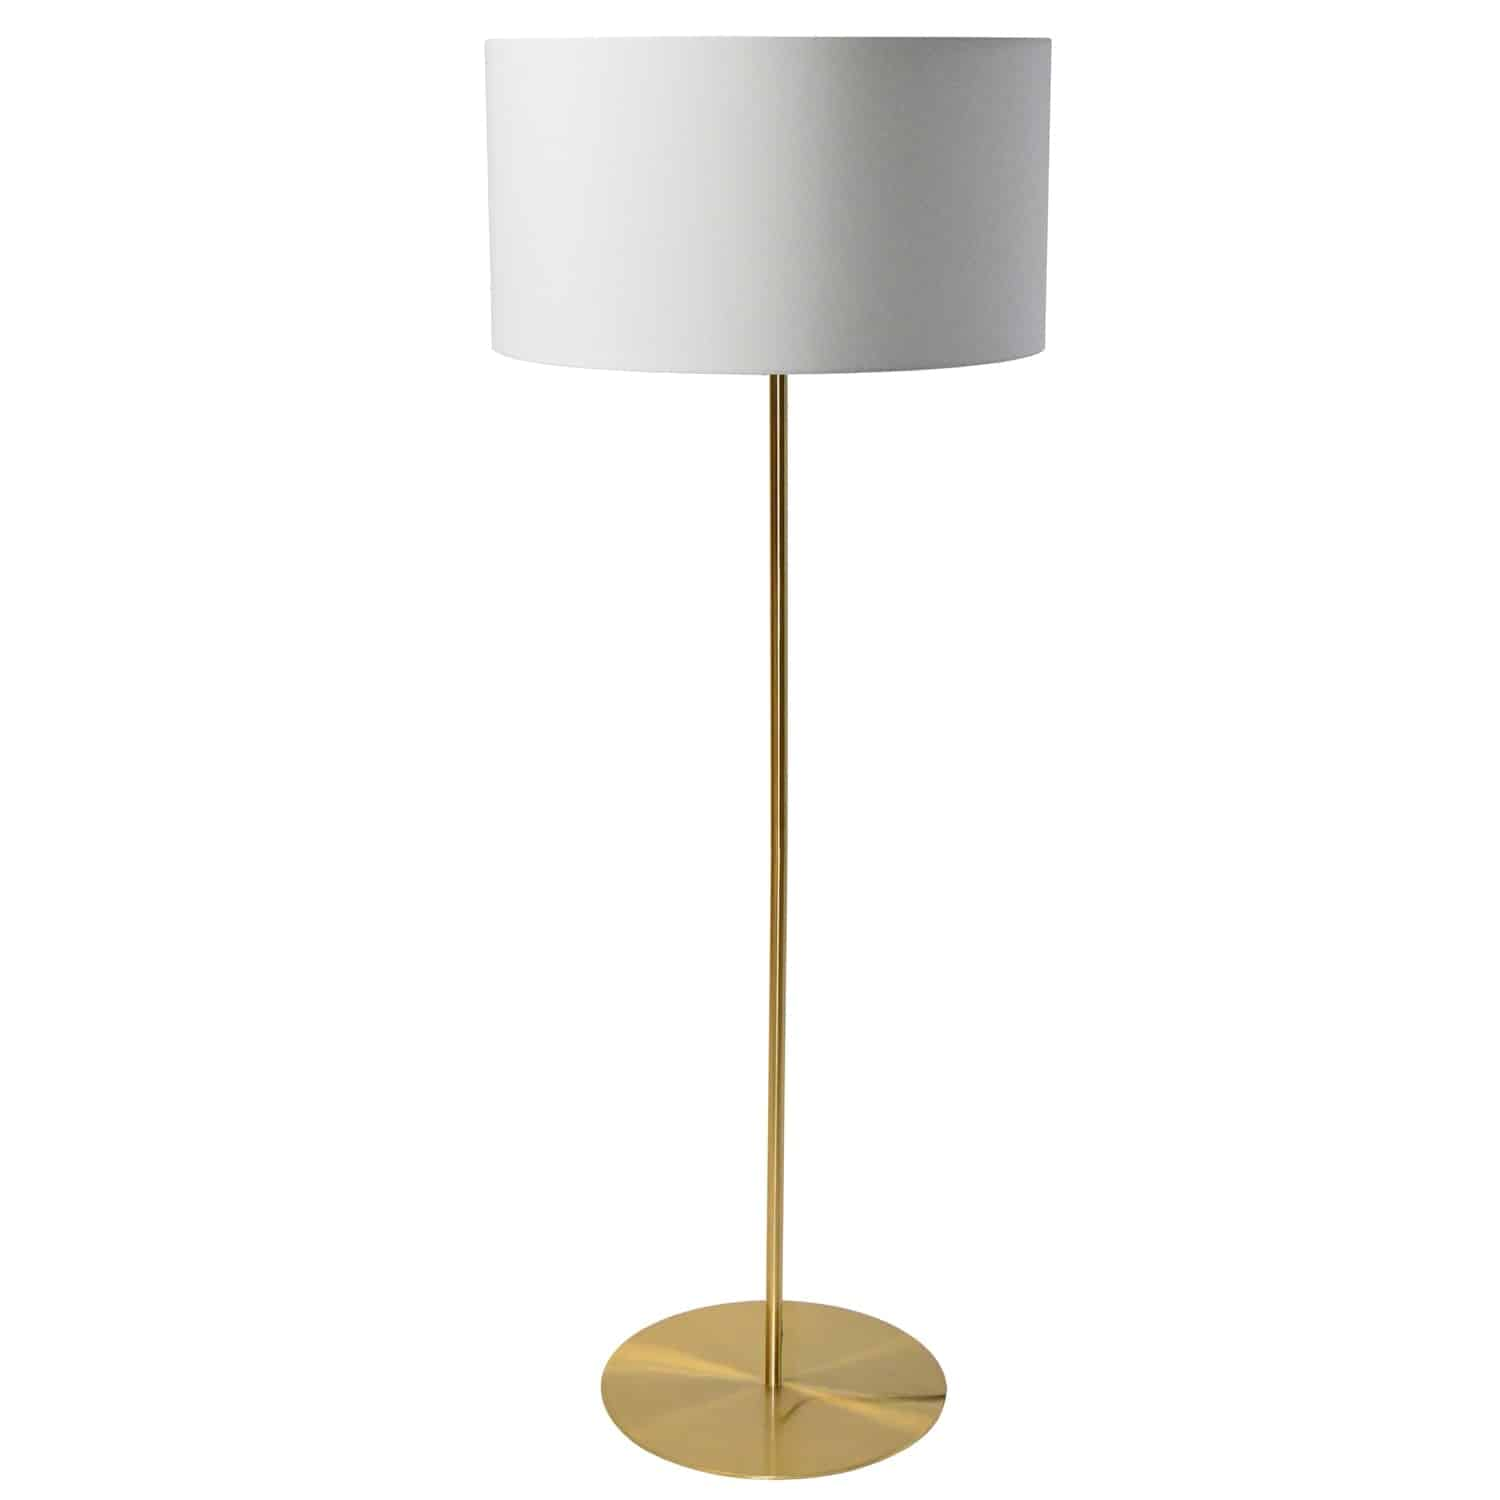 1 Light Drum Floor Lamp with White Shade Aged Brass